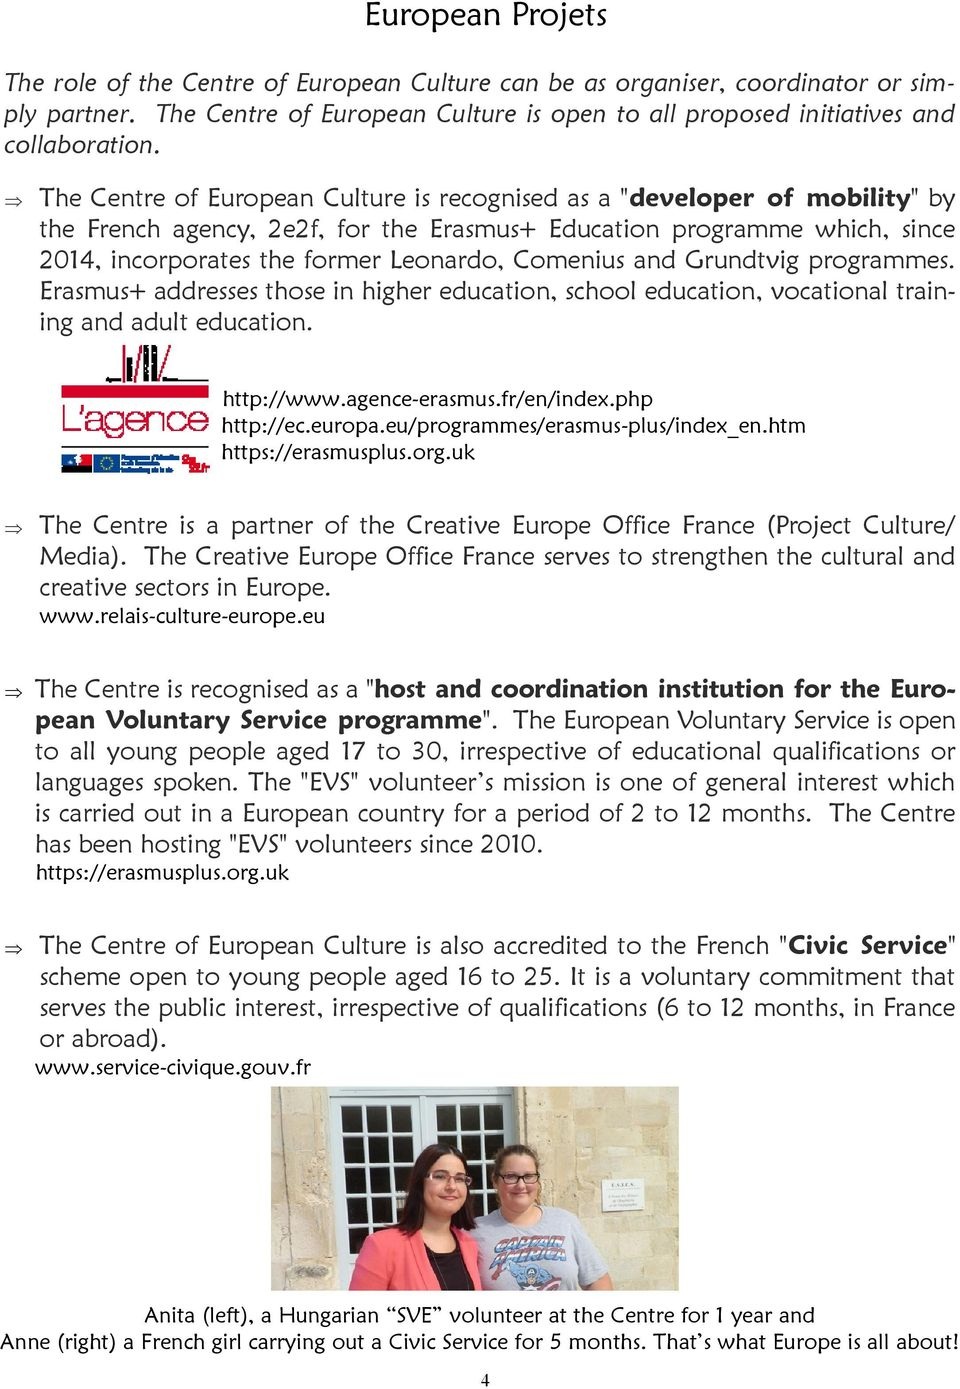 Comenius and Grundtvig programmes. Erasmus+ addresses those in higher education, school education, vocational training and adult education. http://www.agence-erasmus.fr/en/index.php http://ec.europa.